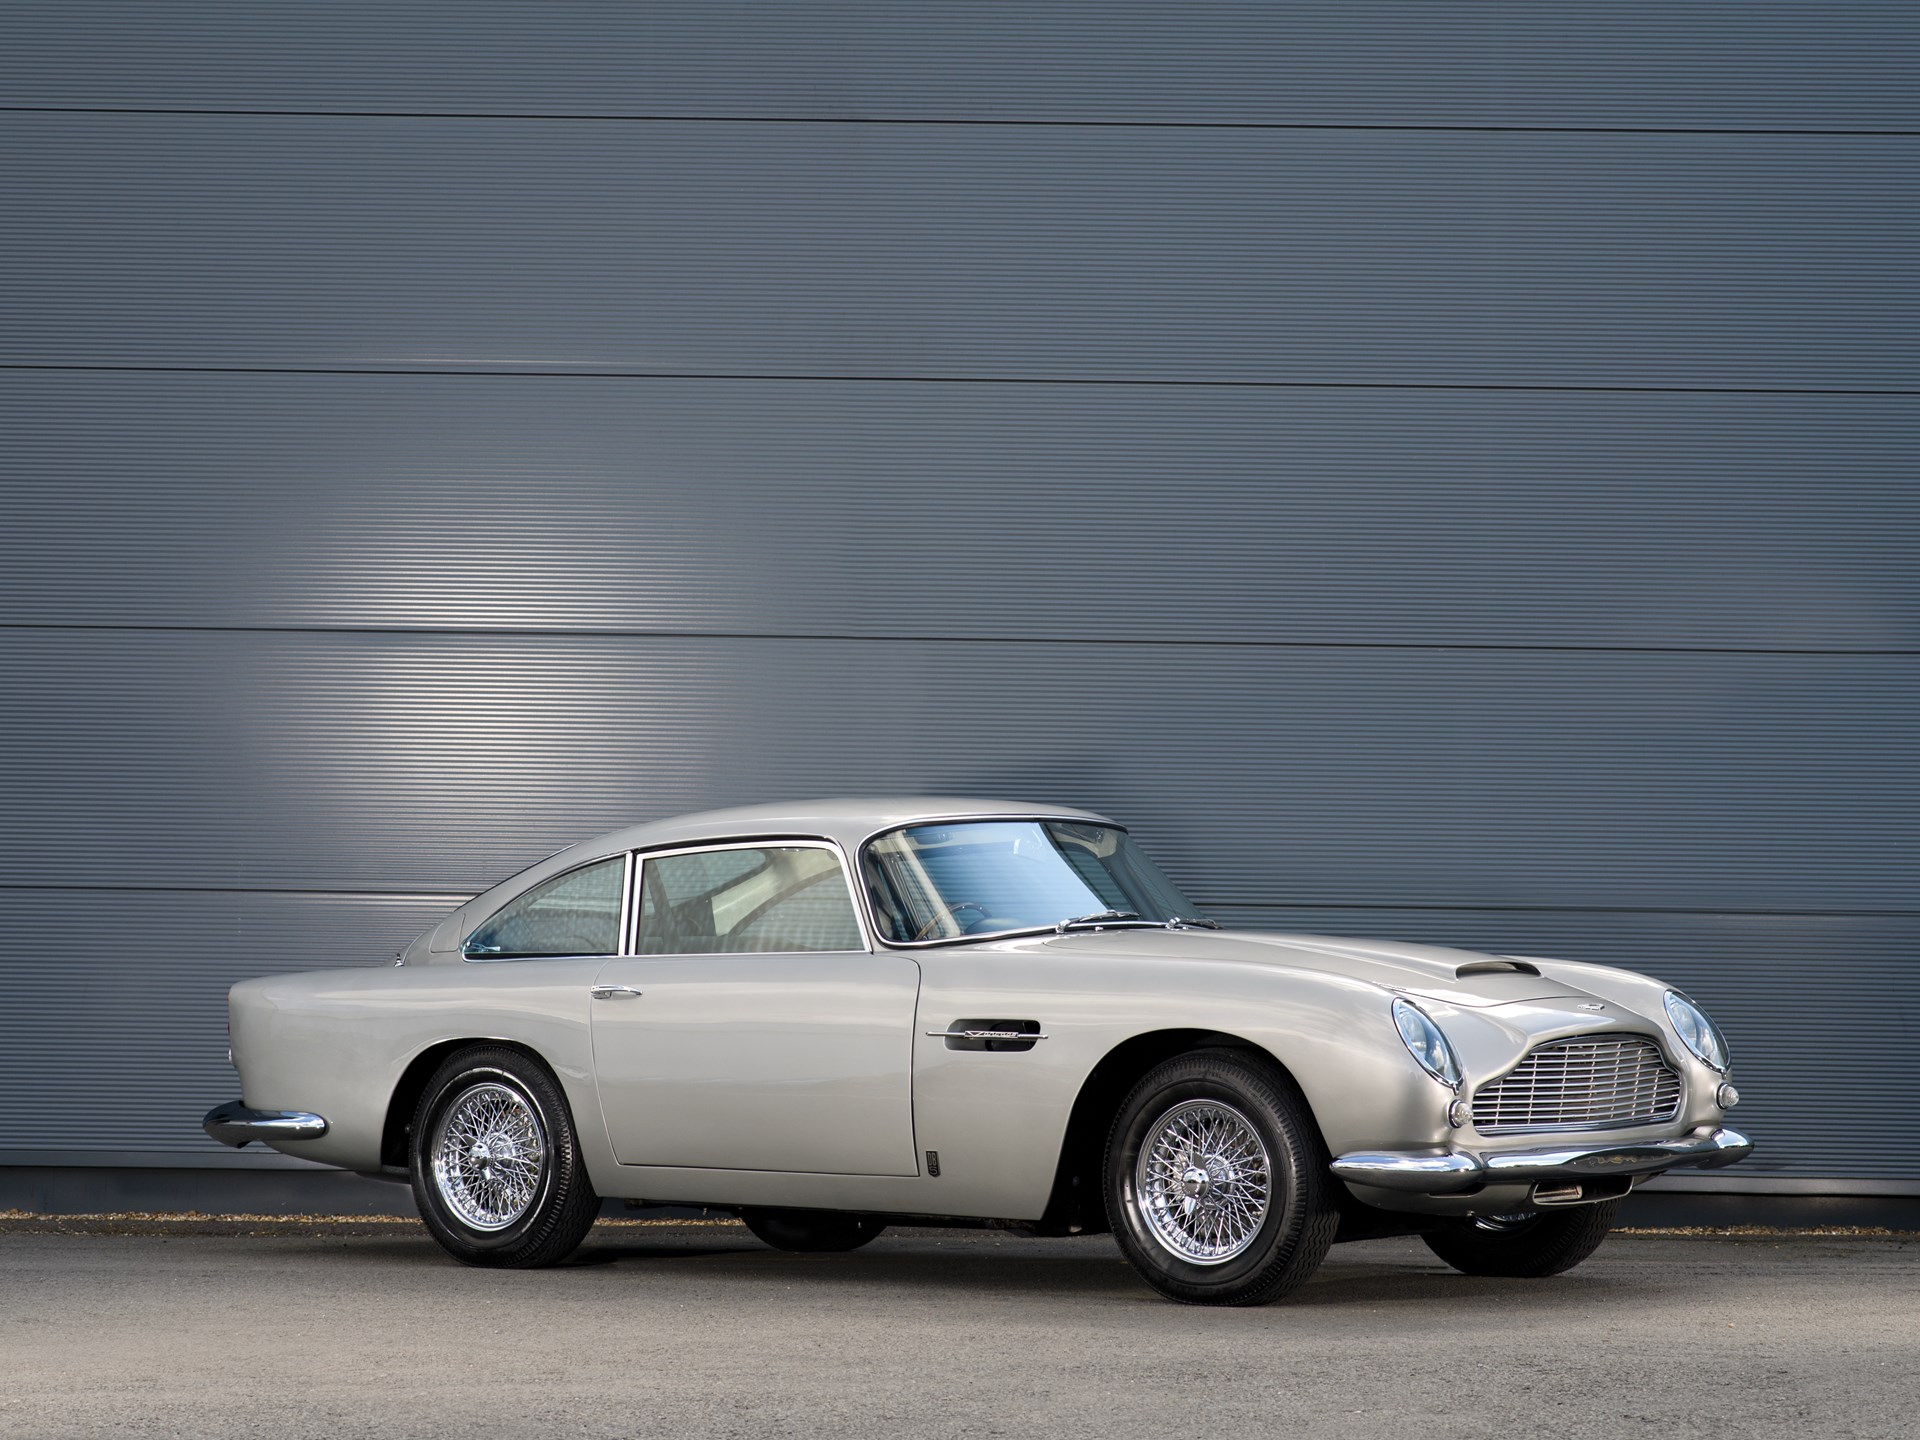 rm sotheby's - 1964 aston martin db5 'vantage specification